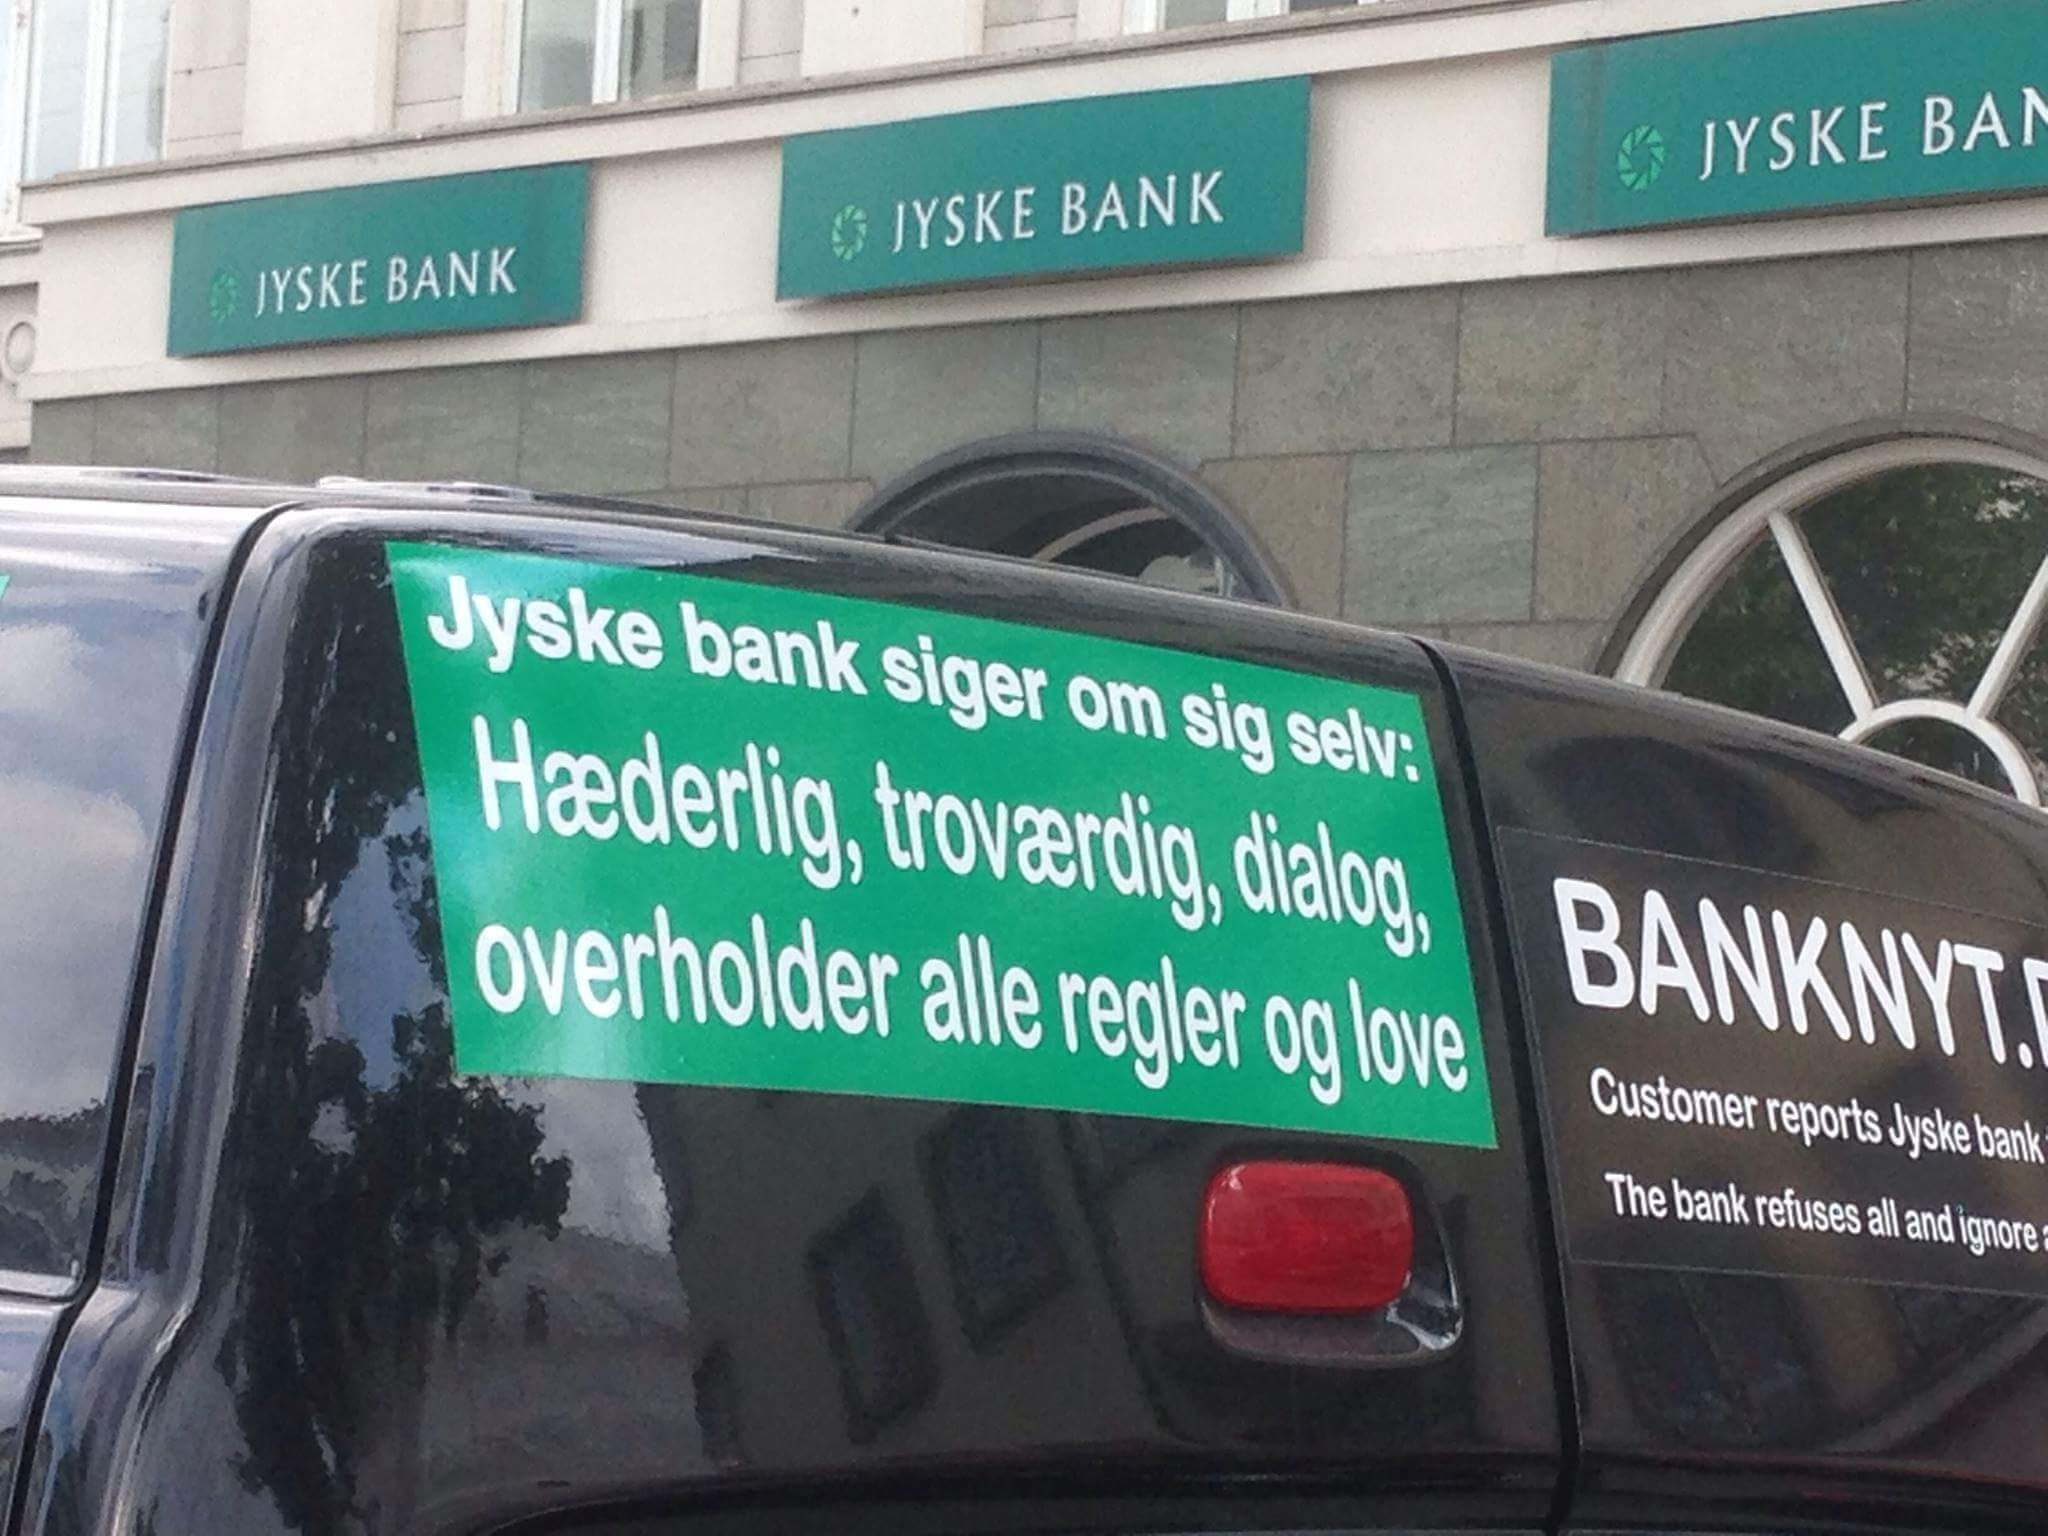 do not trust this bank they lie deceived - The case against the Danish bank Jyske Bank for gross fraud. Has evolved to act on bribery too, as has plaintiff's lawyer Lundgrens. Which is a large Danish lawyer's house, have received return commission, in the form of million assignments by the defendant Jyske Bank. So it looks bad for the confidence of the big Danish lawyer's houses as Lundgrens. / The question is now. Has Lundgren's lawyer partner company, in which the applicant's lawyer Dan Terkildsen is a partner, received a return commission lion from Jyske Bank. Have Lundgren's lawyers been given assignments by the defendant Jyske Bank. Against it as the Lundgren's lawyers, was hired to present to the court. / Lundgrens who is also the plaintiff's lawyer, so does not submit the plaintiff's fraud allegations against Jyske Bank. Jyske Bank who has now also hired the same lawyer to advise, Denmark's second largest bank Jyske bank, in a property sale for over half a billion Danish kroner. / That is a fact That after Lundgren's lawyers were employed by Jyske Bank. Have Lundgren's lawyers objected to the plaintiff's claims Jyske Bank for millions fraud, as a direct link between Jyske Bank paying Lundgren's lawyers millions in fees, for advice. / The case against the Danish fraud bank Jyske Bank is only growing. The plaintiff has yesterday, October 28, 2019. Even had to submit their fraud allegations against Jyske bank. / The plaintiff is now considering whether Lundgrens must testify. To confirm that their client has requested Lundgren's lawyers at least 30 times. About presenting the serious allegations against Jyske Bank for million fraud. And allegations against Jyske Bank Group Management With the bank's executive chairman CEO Anders Christian Dam / Then Lundgren's lawyers in court may have the opportunity to explain why Lundgrens has not presented the client's allegations against Jyske bank for fraudulent conduct. And why Lundgrens directly opposed the client's inst